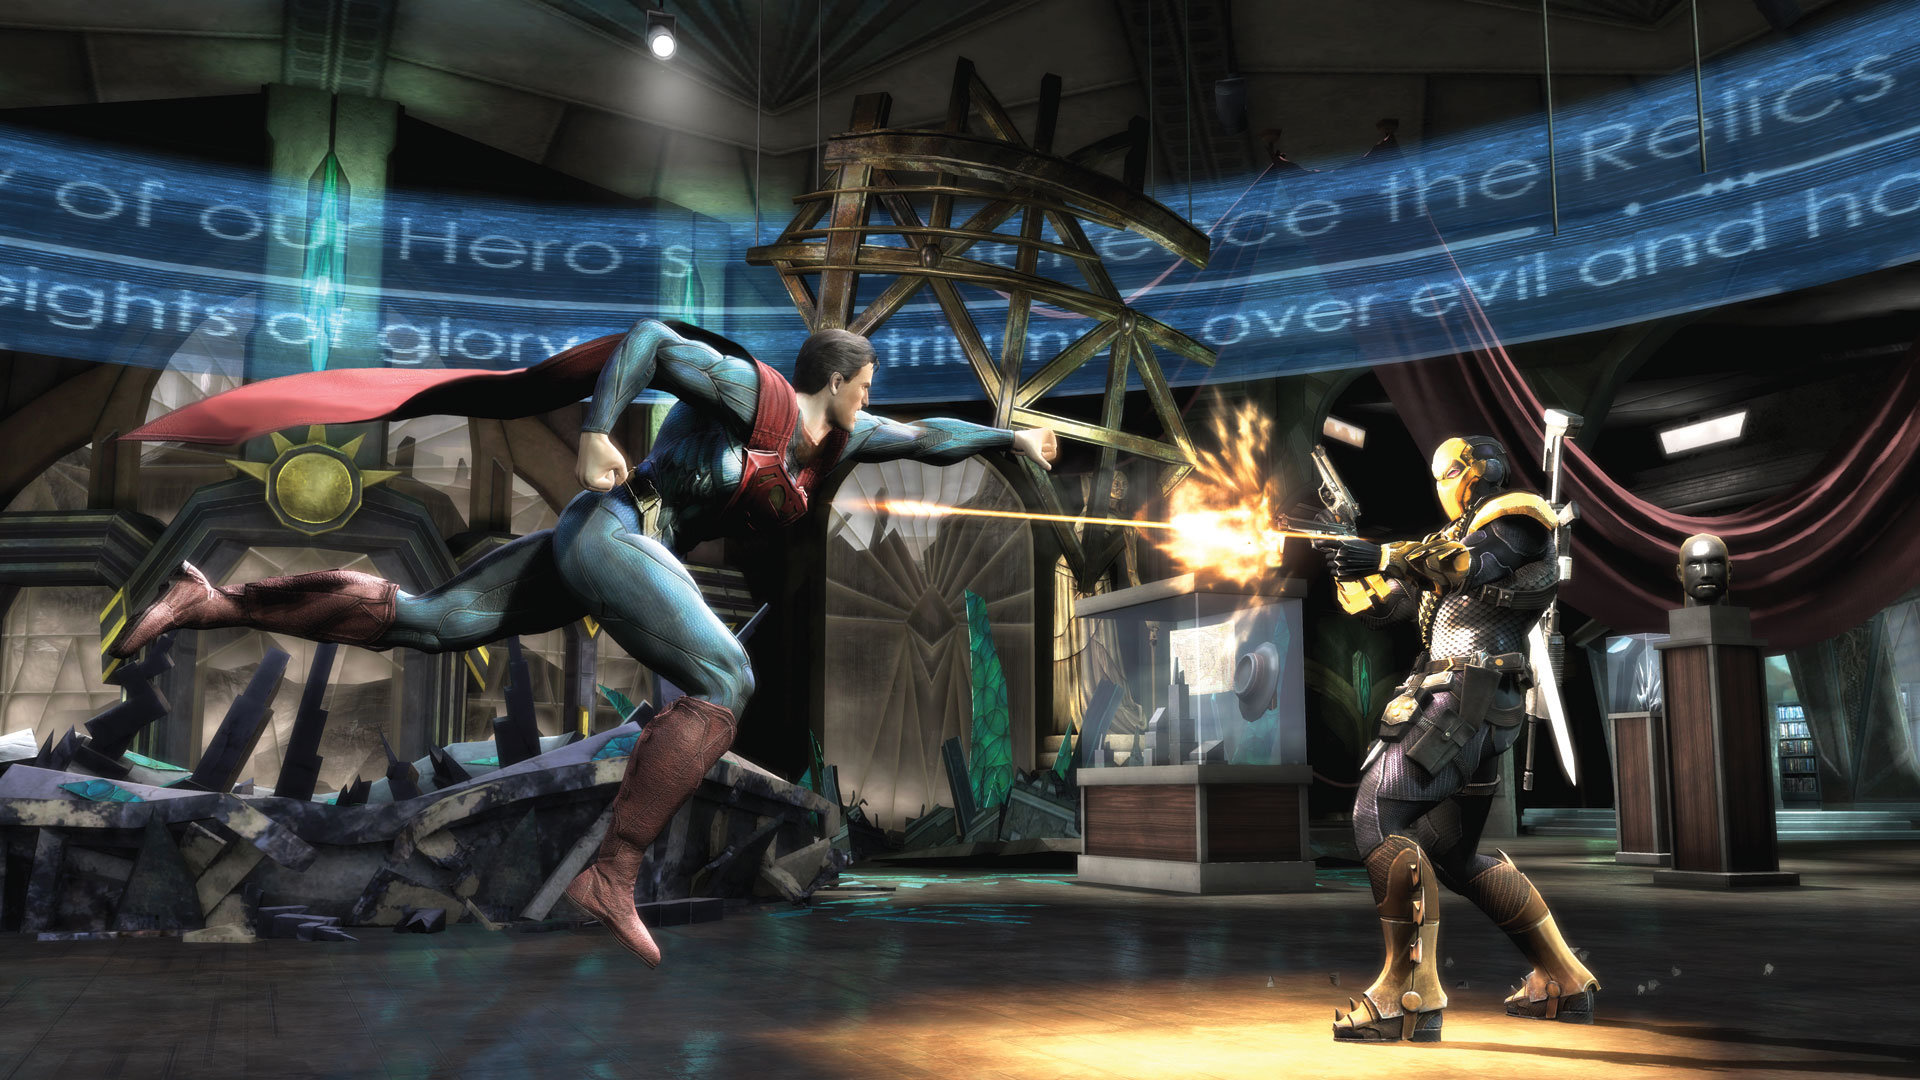 Injustice gods among us pc game download. Sorry! Something went wrong!